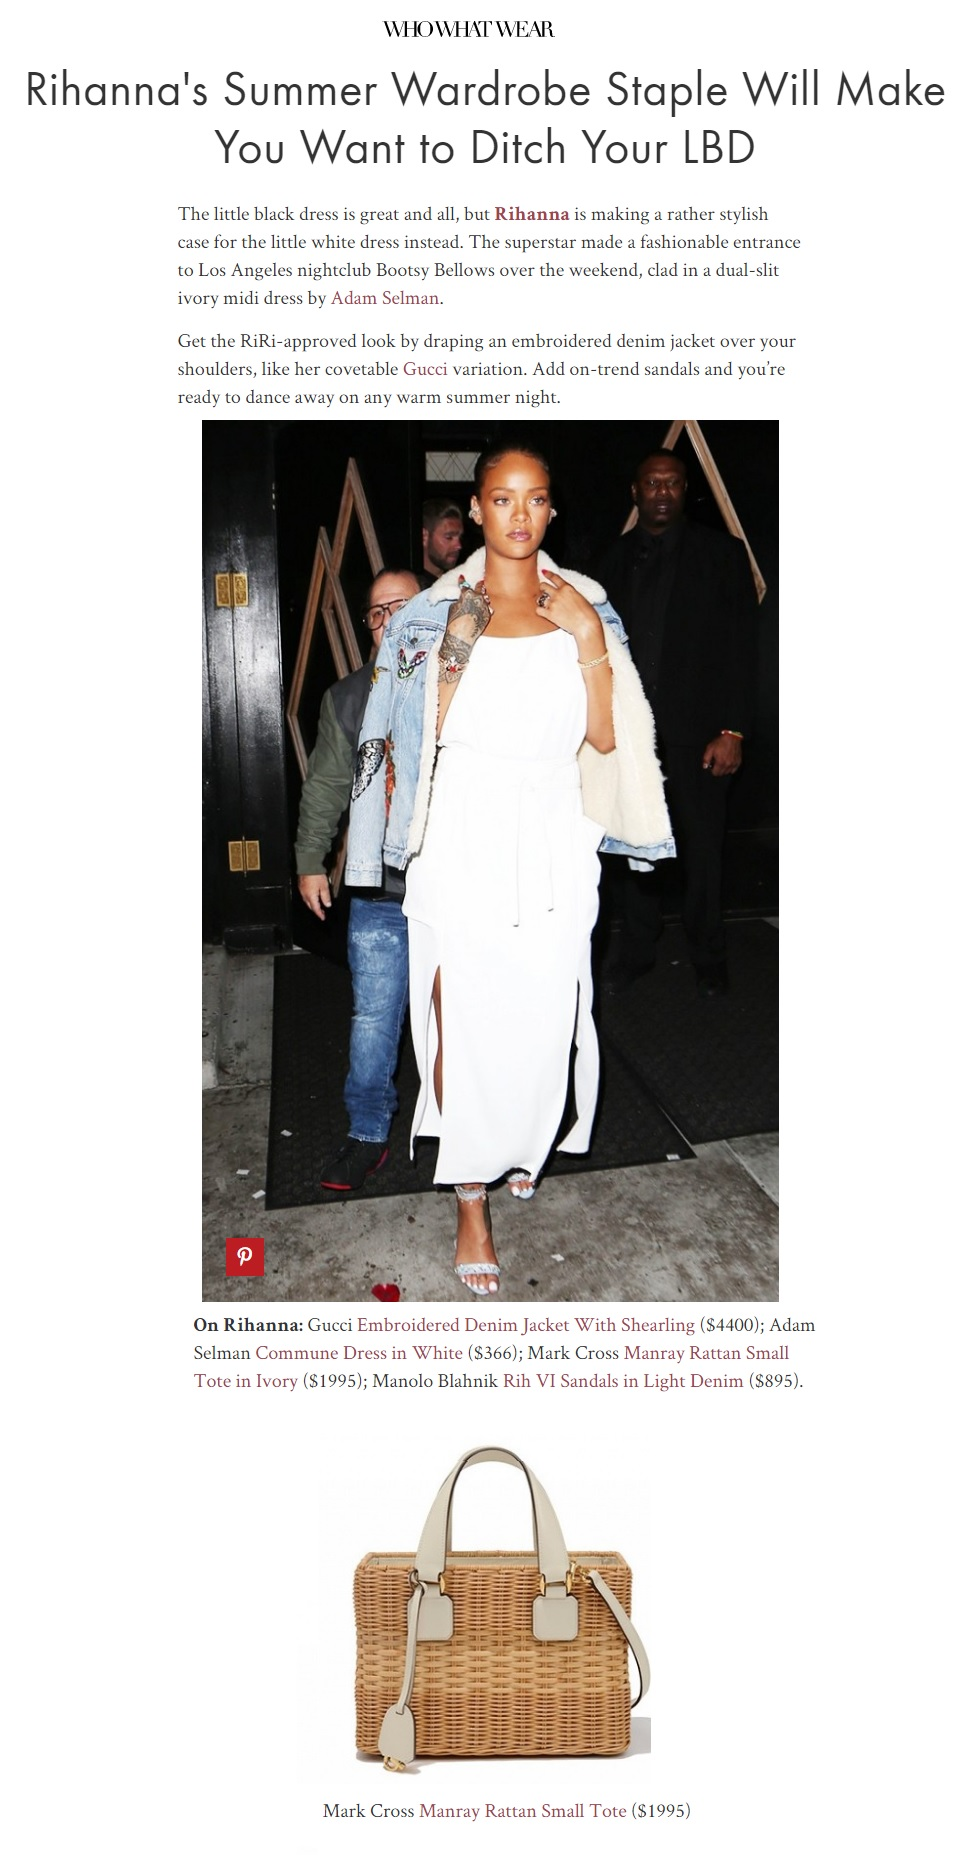 Who What Wear.com - Rihanna's Summer Wardrobe Staple Will Make You Want to Ditch Your LBD - 6.14.16.jpg